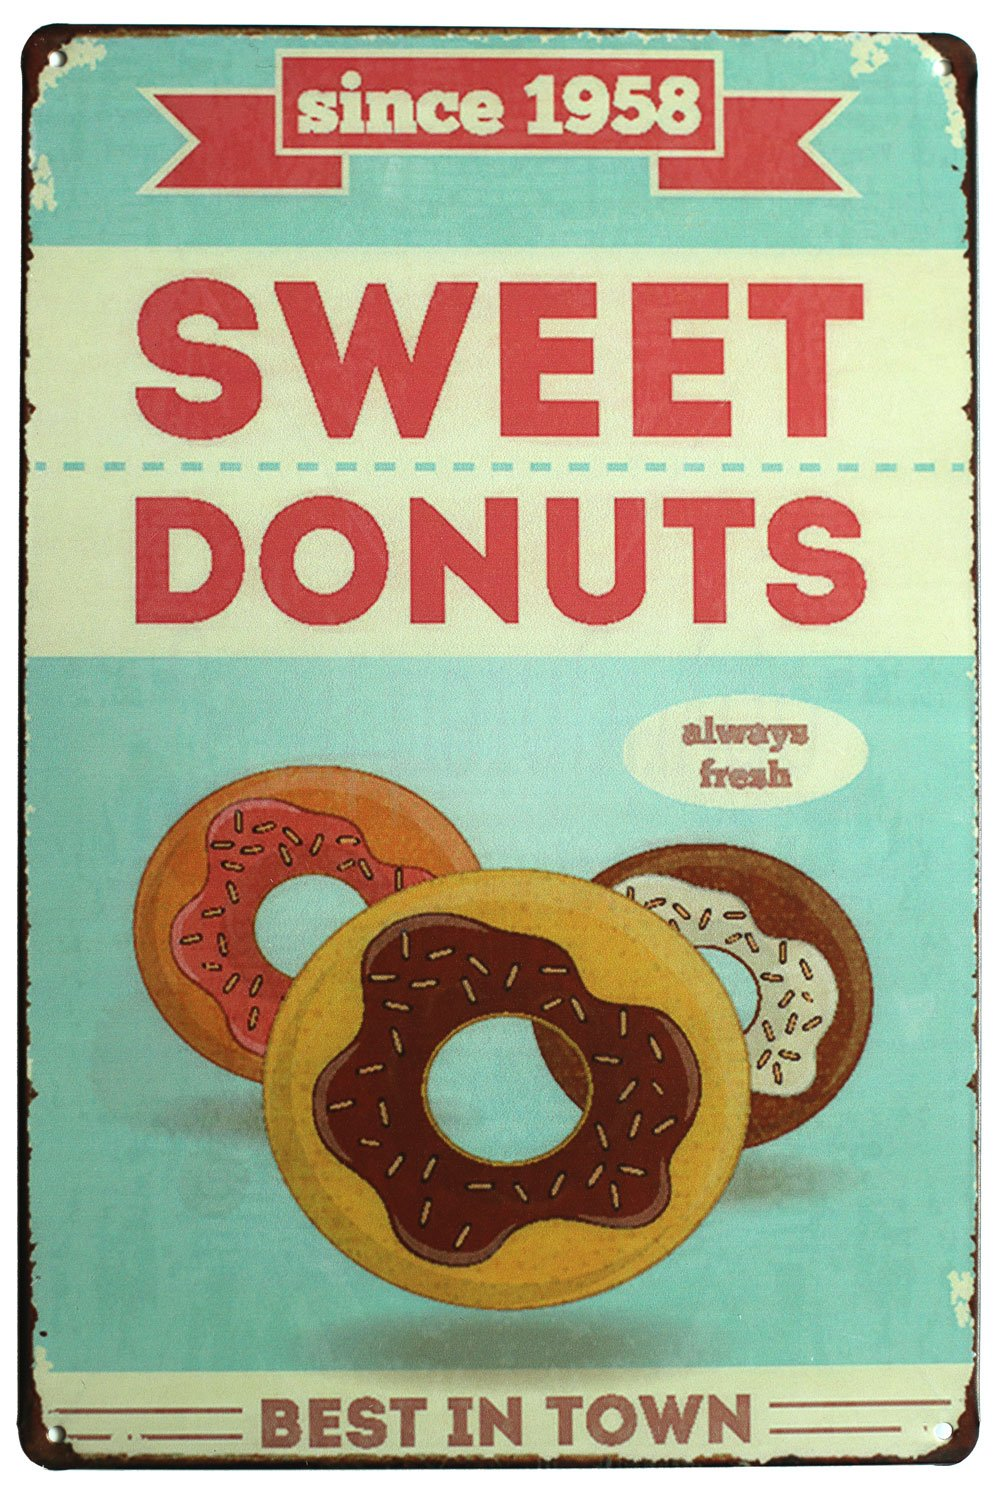 SUMIK Sweet Donuts Best in Town, Metal Tin Sign, Vintage Art Poster Plaque Kitchen Home Wall Decor